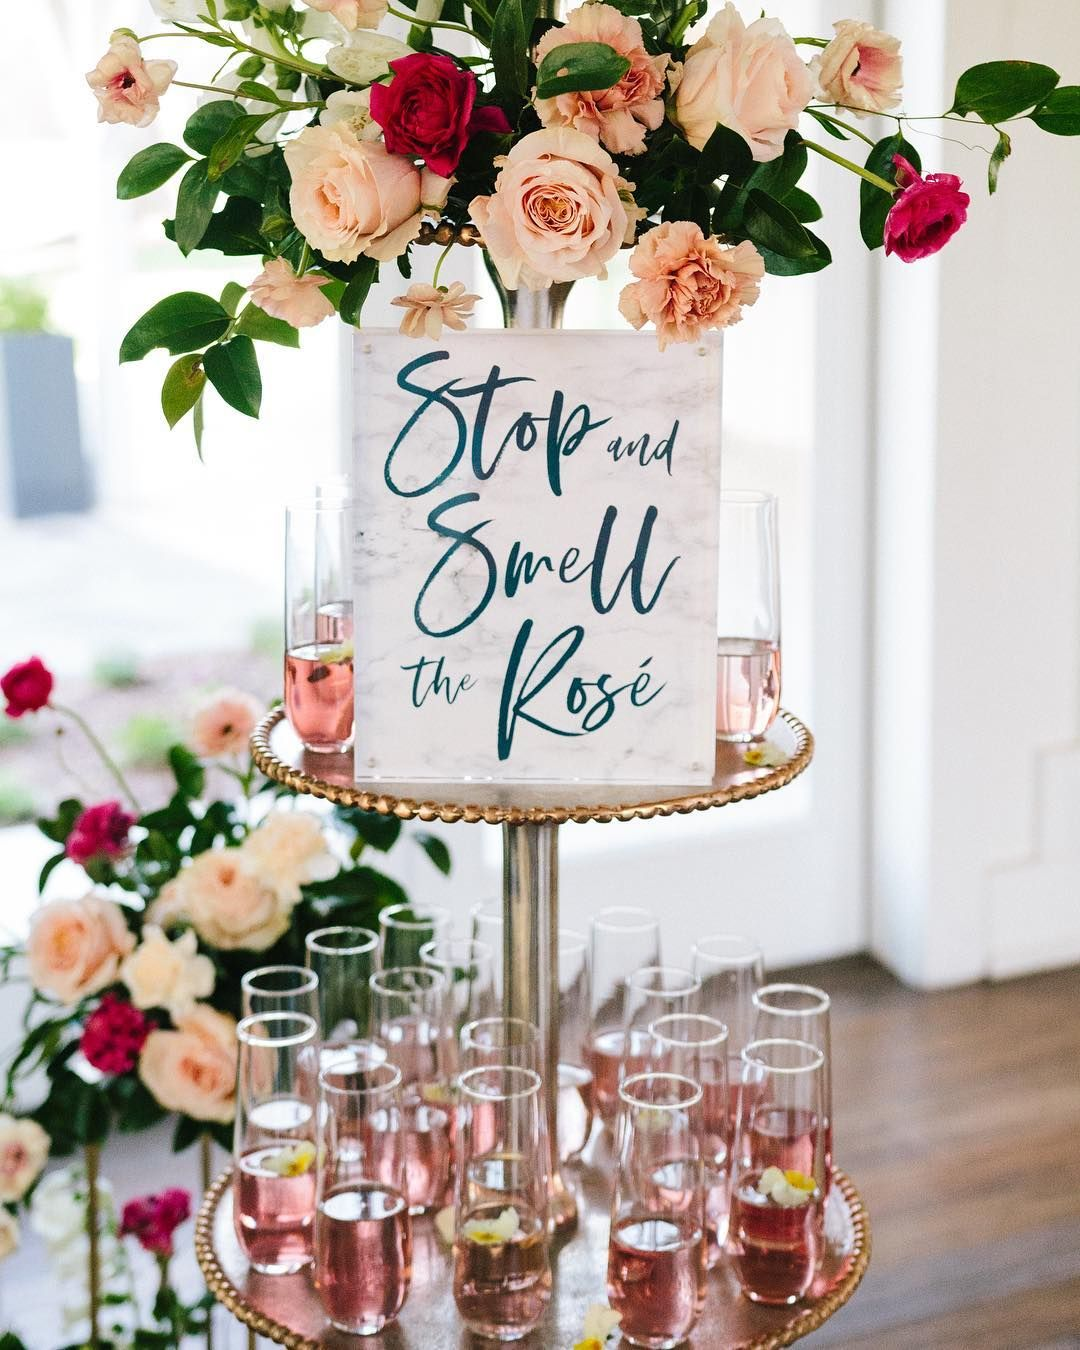 Can you imagine walking into an engagement party, bridal shower, bachelorette party or wedding and seeing this? Goals. Absolutely gorgeous… #engagementparty